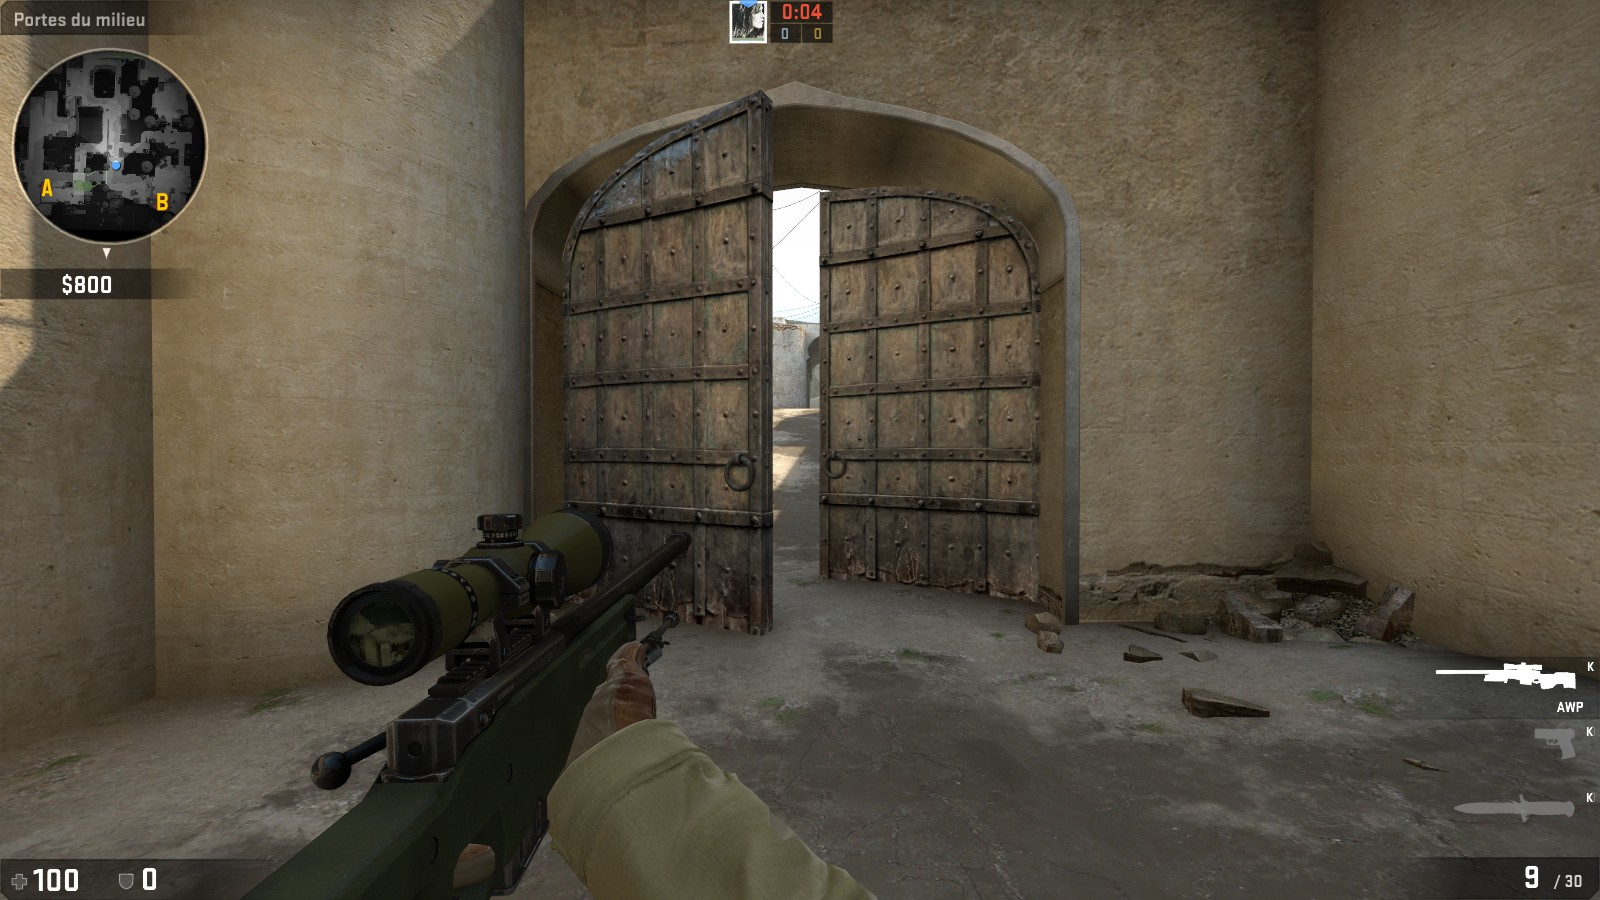 Counter-Strike: Global Offensive update for 7/10/14 - BC-GB